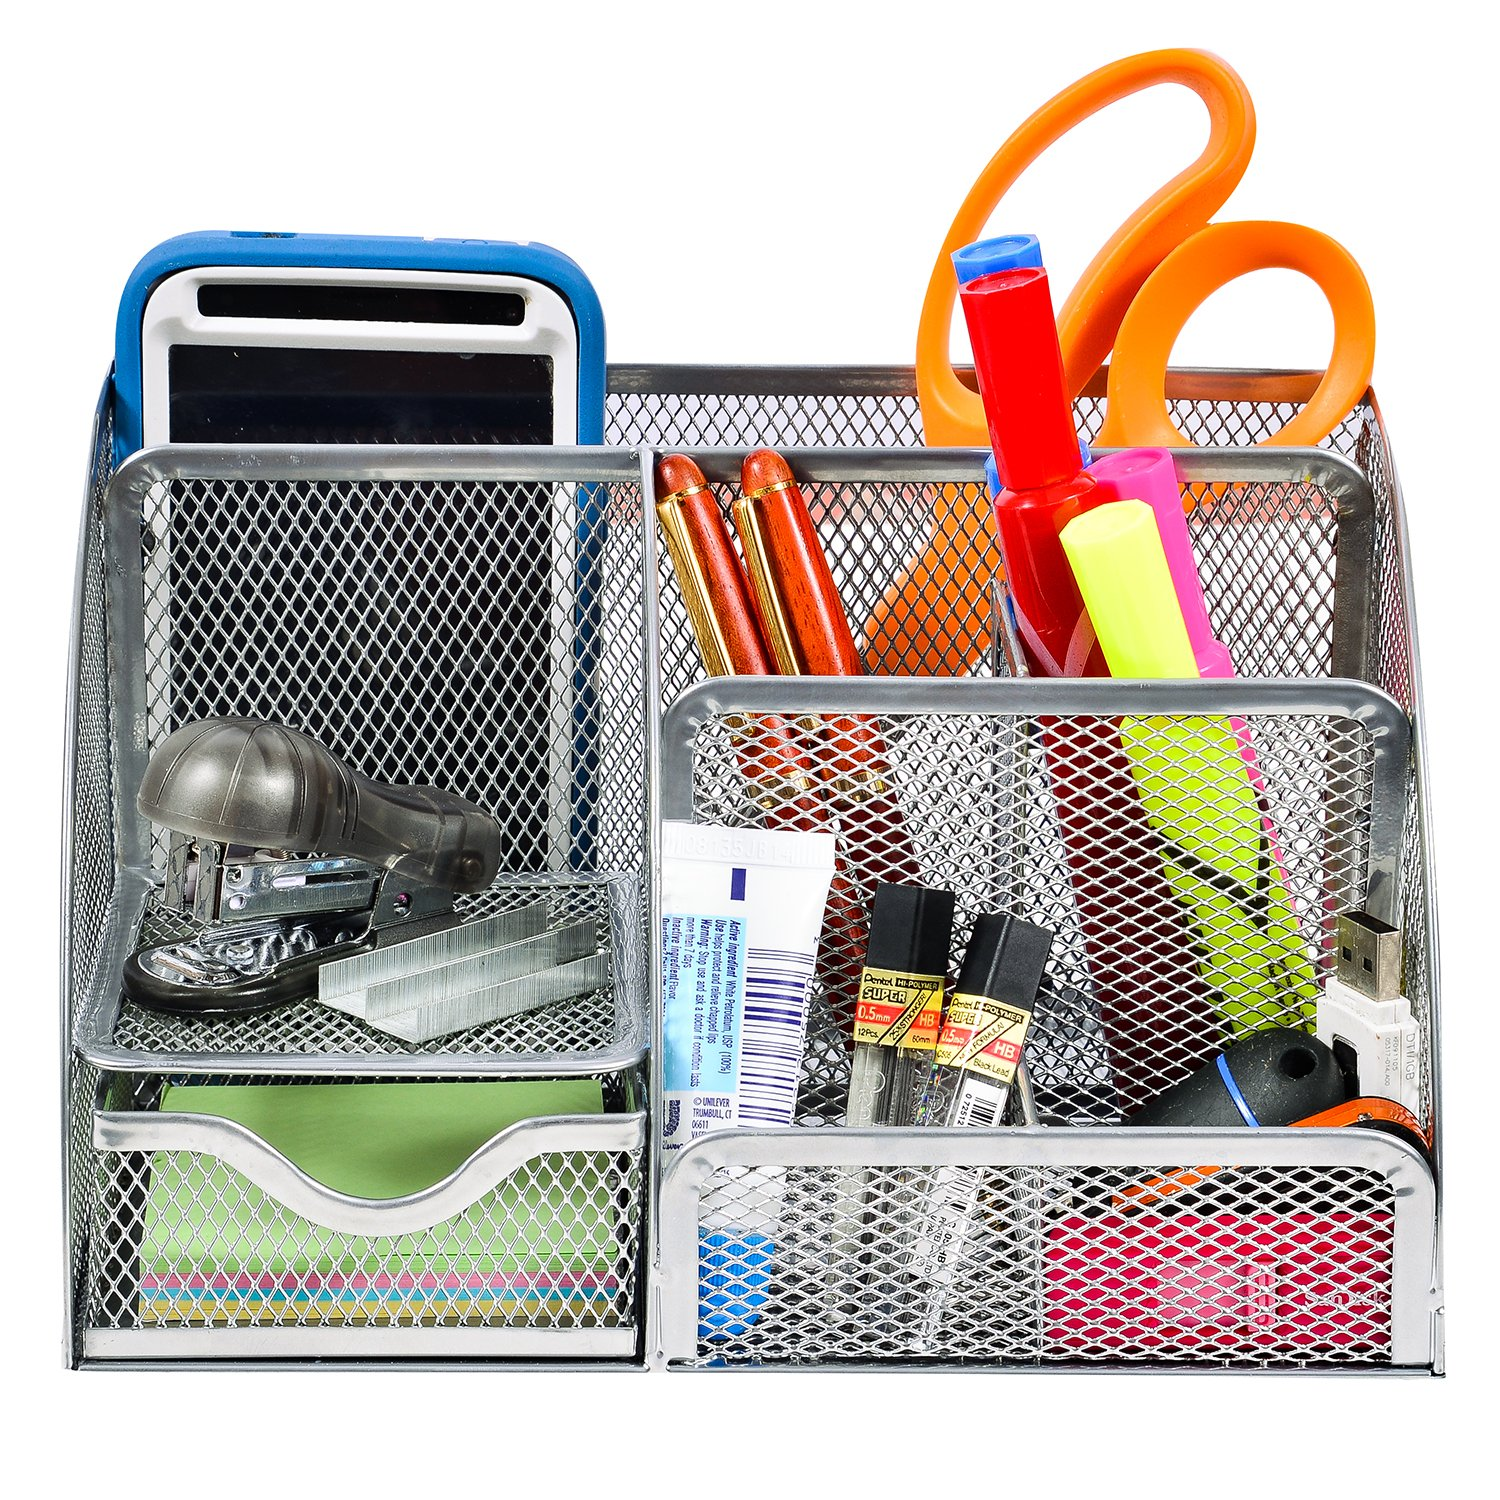 CoFads Desk Organizer Wire Mesh 6 Compartment Office Supplies Caddy With Additional Drawer, - Bonus Pack Of 100 Sticky Notes Included, Color Silver.